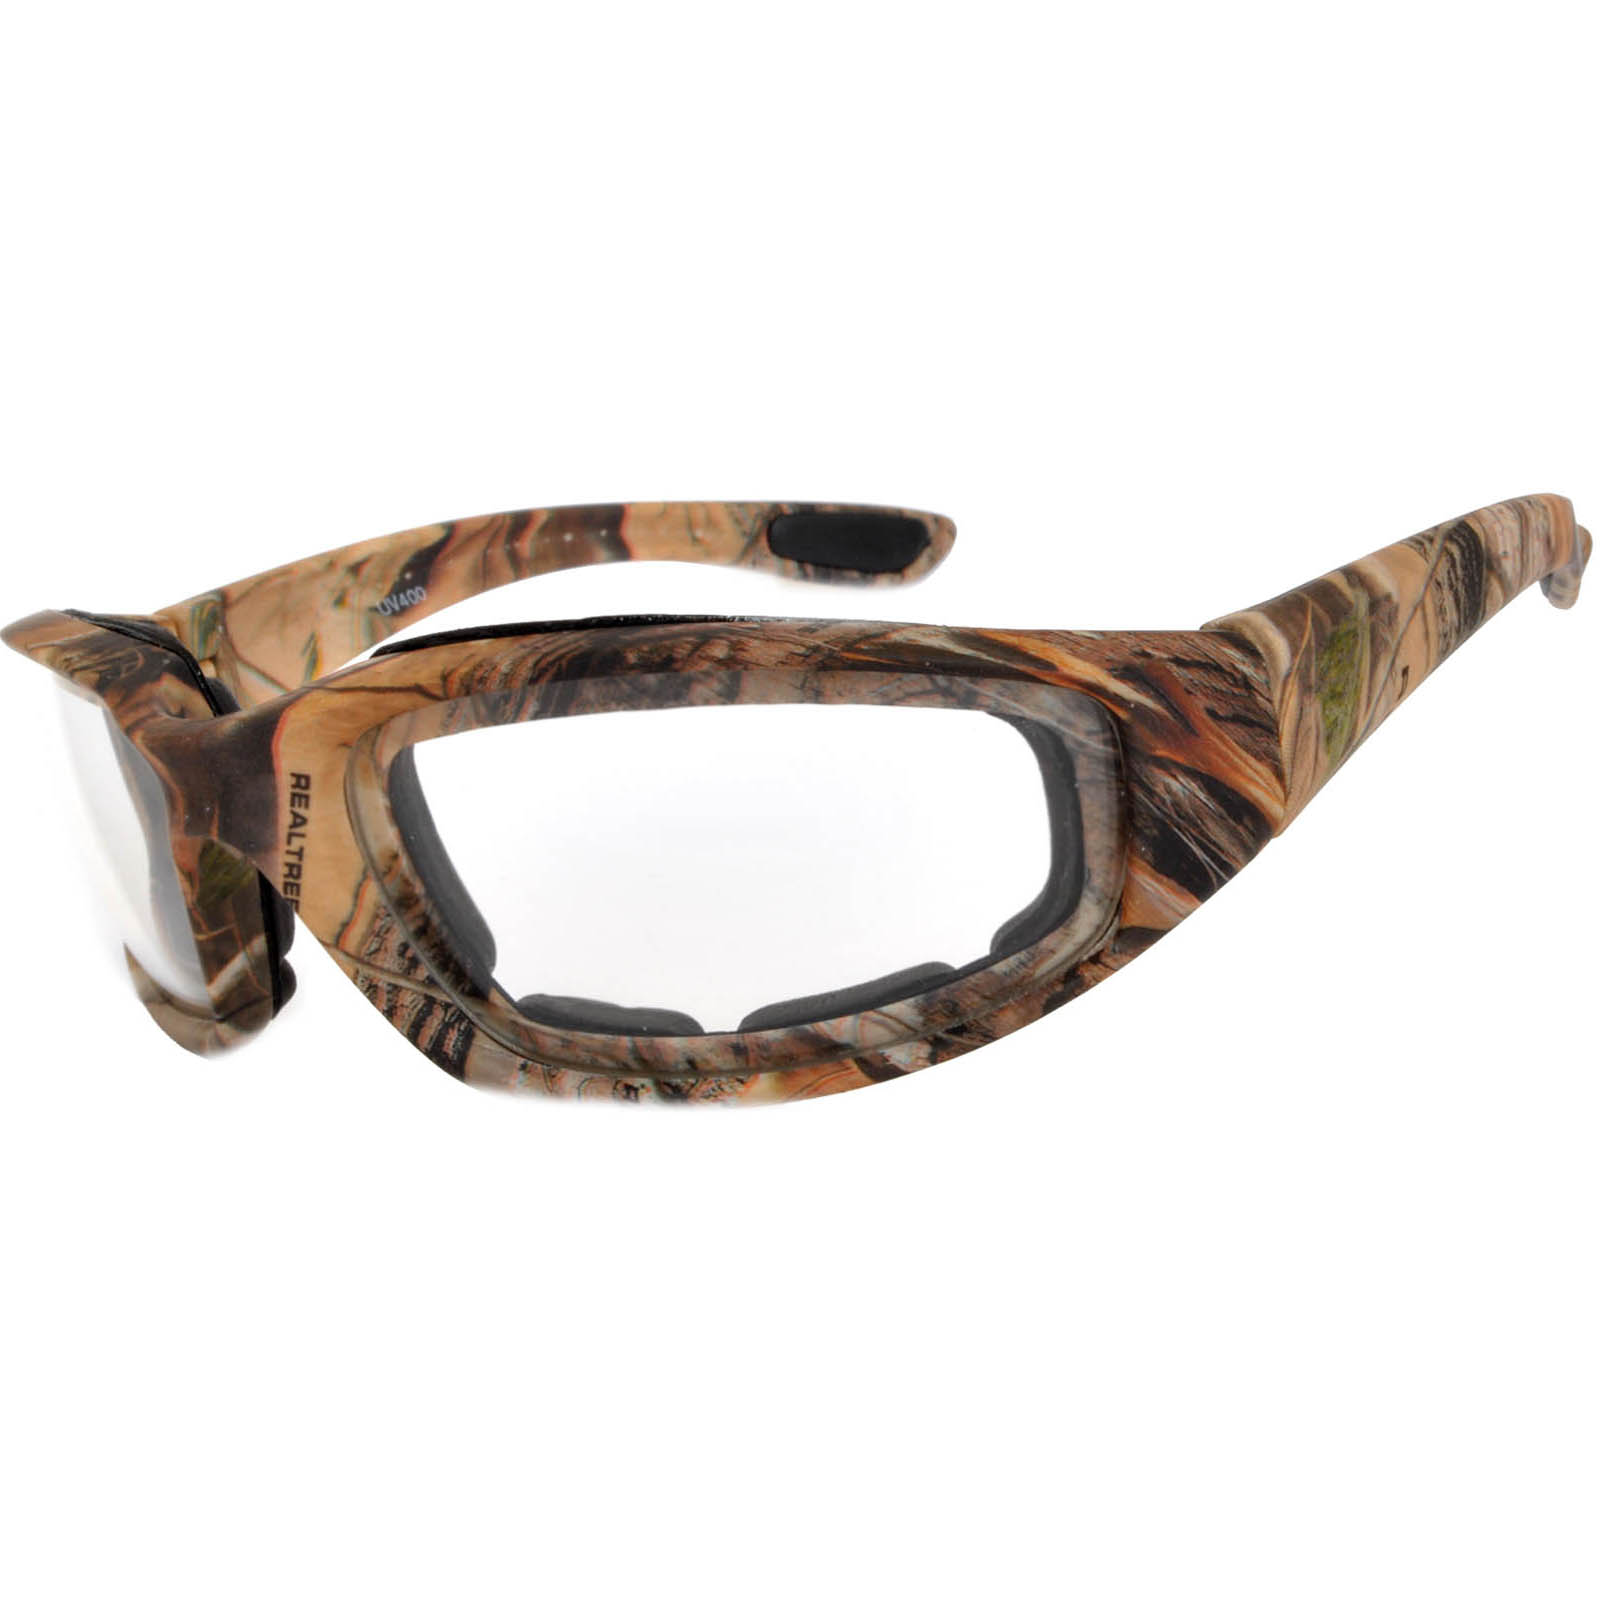 OWL Eyewear Motorcycle Padded Glasses Camo#3 Frame Clear Lens (One ...